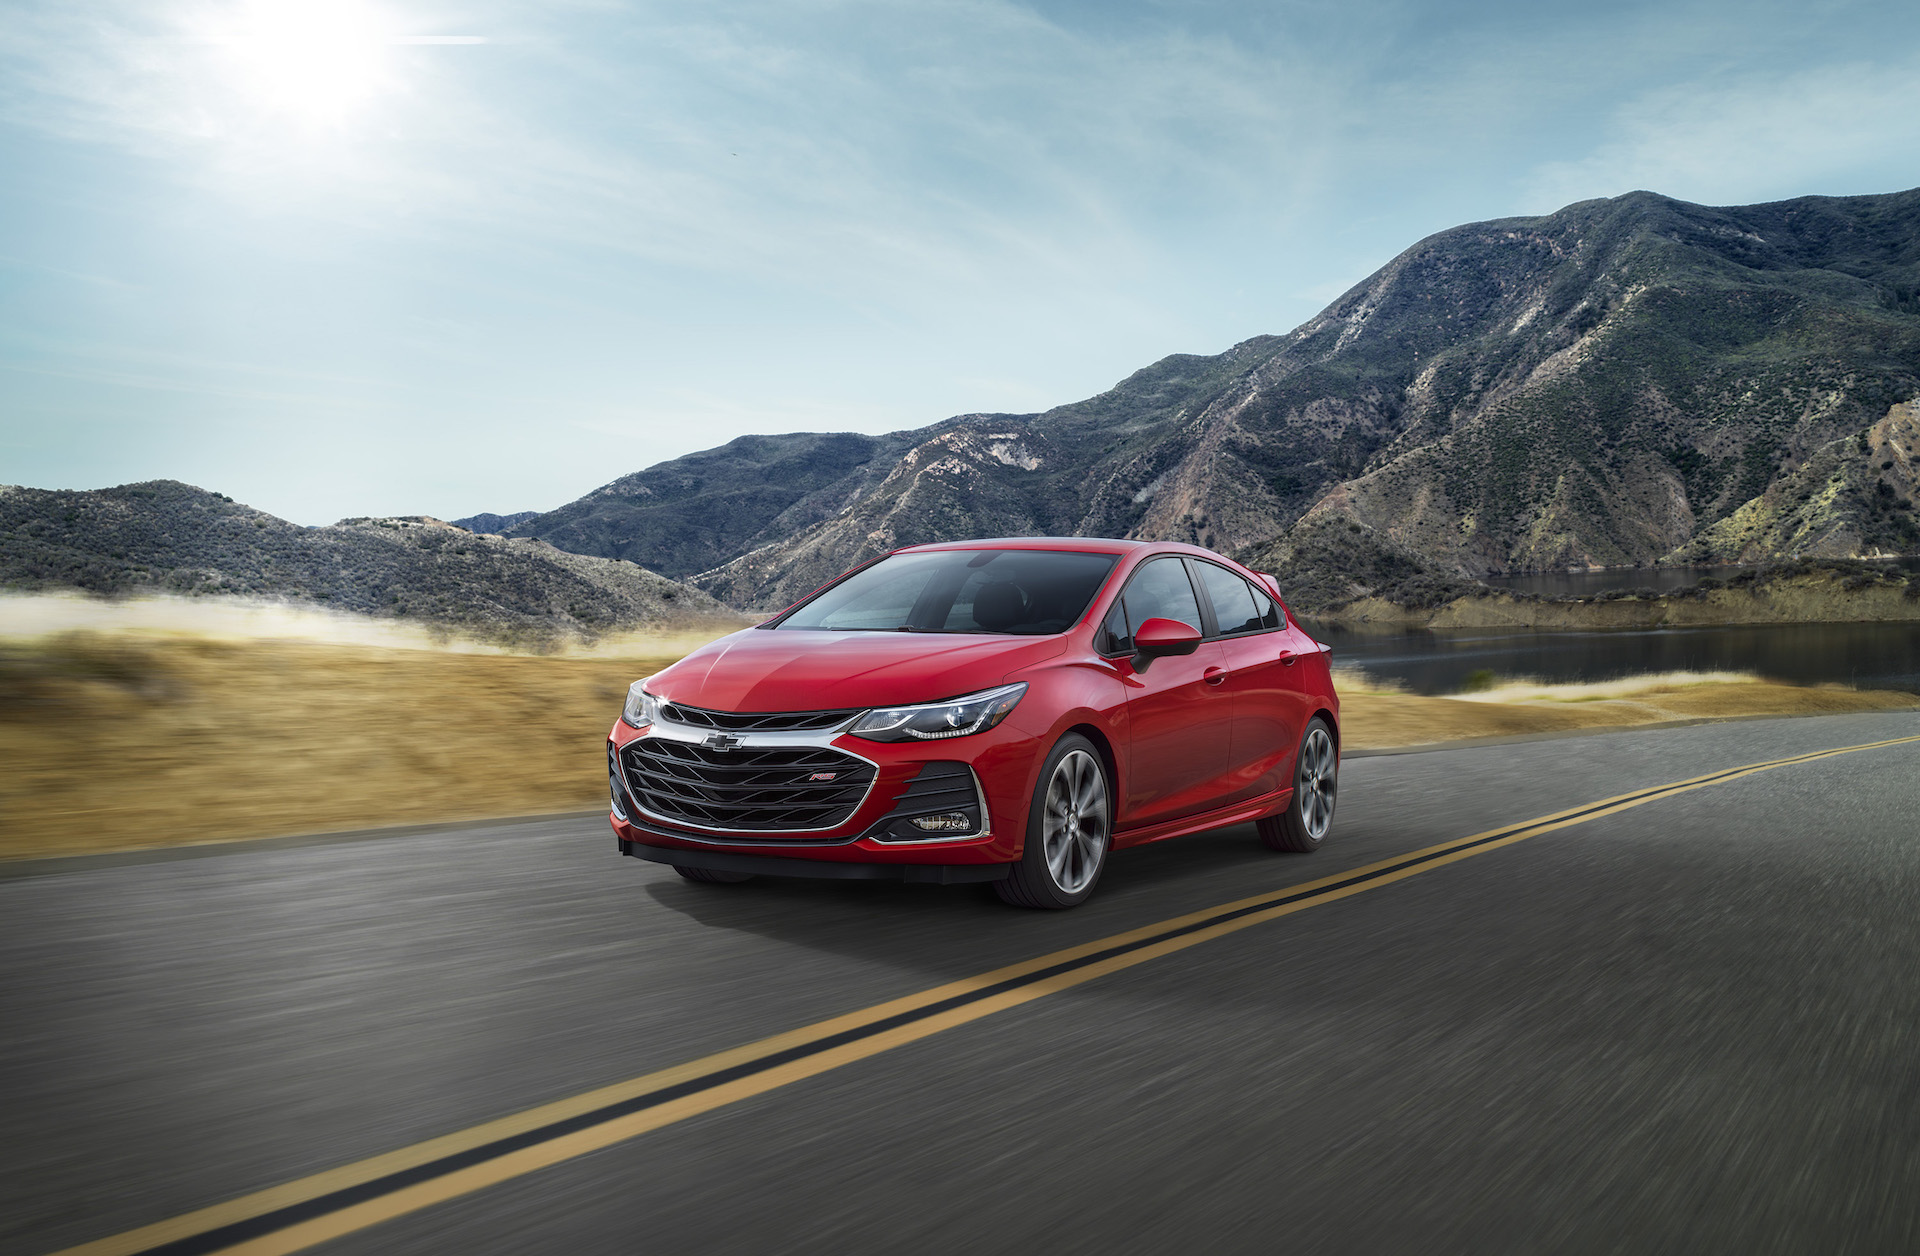 Used Chevrolet Vehicles for Sale in Chicago, IL